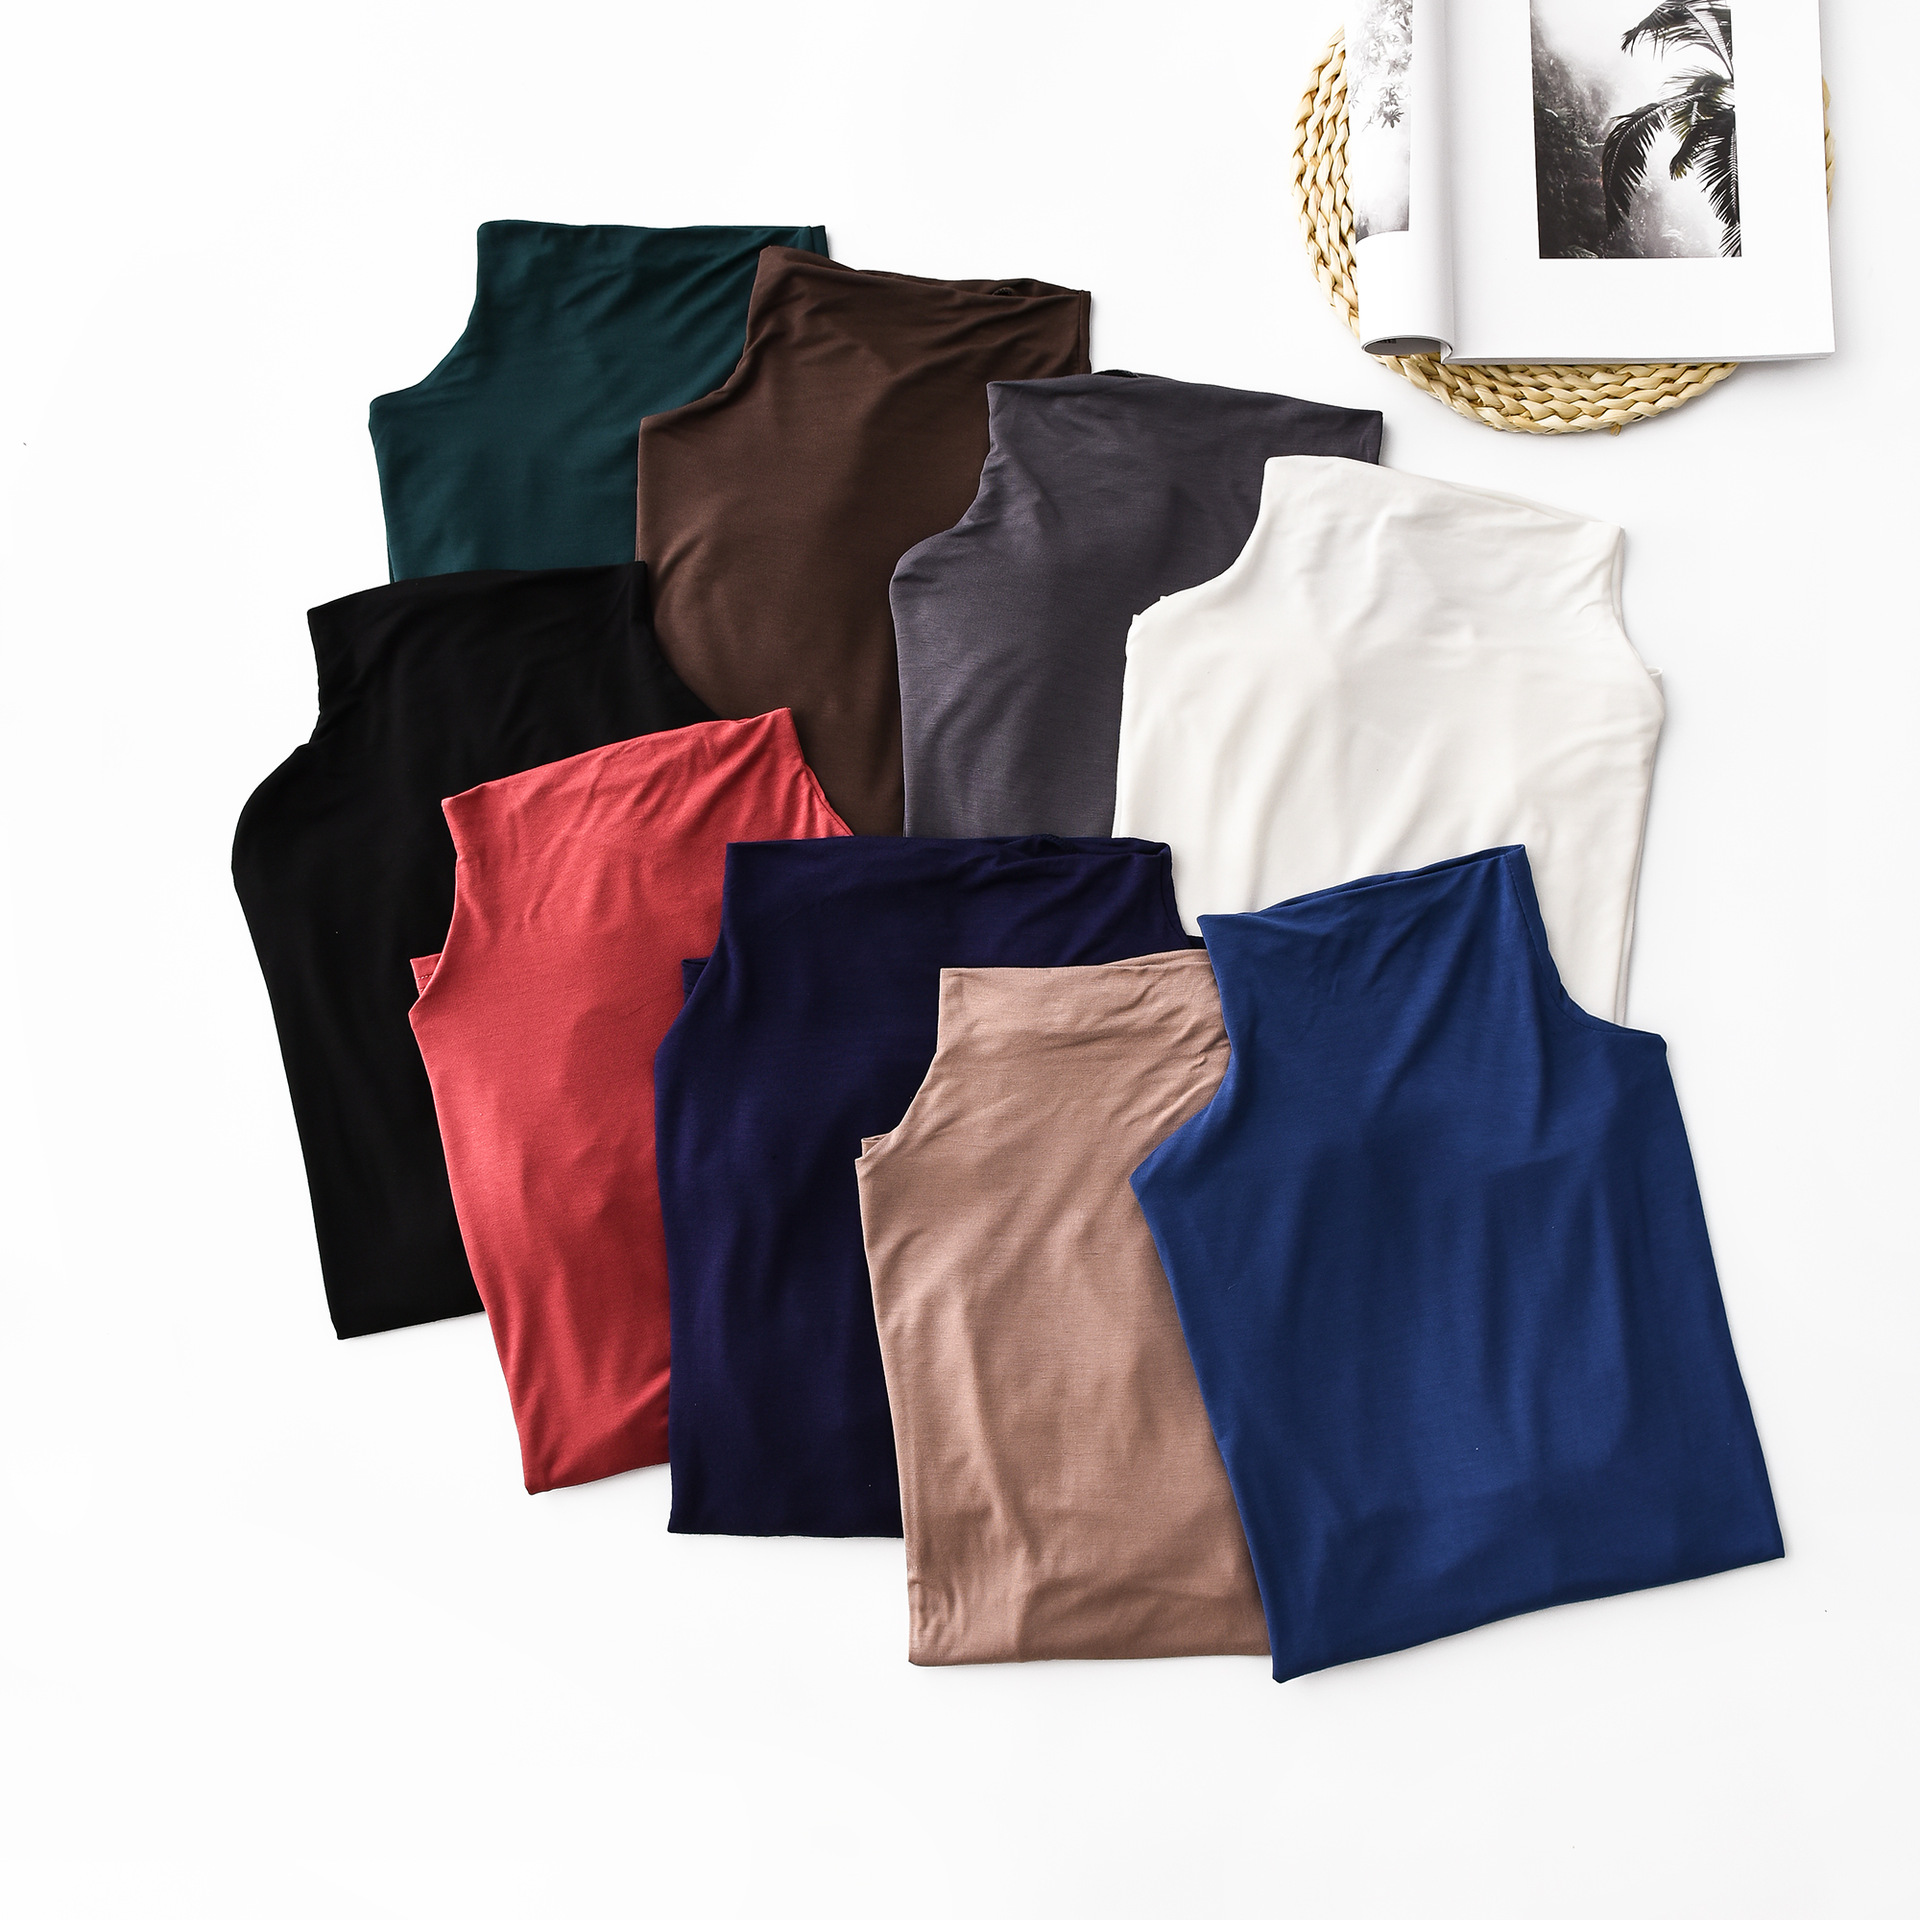 98 Cotton Summer Solid Color Basic Tees Women High Stretch Slim Fit T shirts Loose Turtleneck Tops Short Sleeve Korean Fashion in T Shirts from Women 39 s Clothing